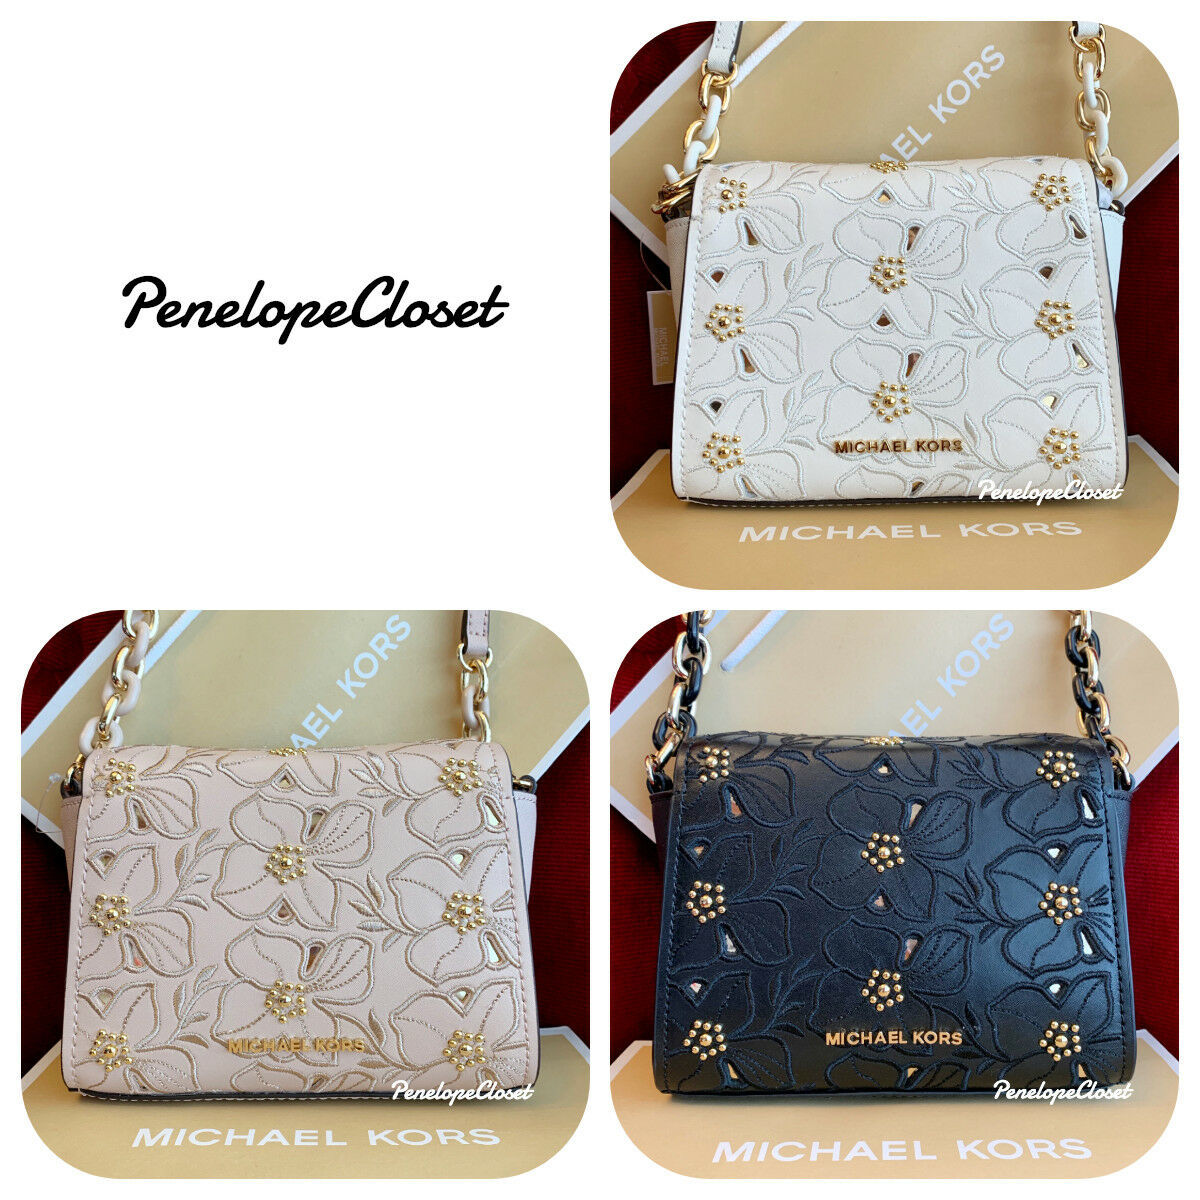 e510fbecdc8c NWT MICHAEL KORS FLORAL STUDDED LEATHER SOFIA SMALL CROSSBODY BAG IN VARIOUS